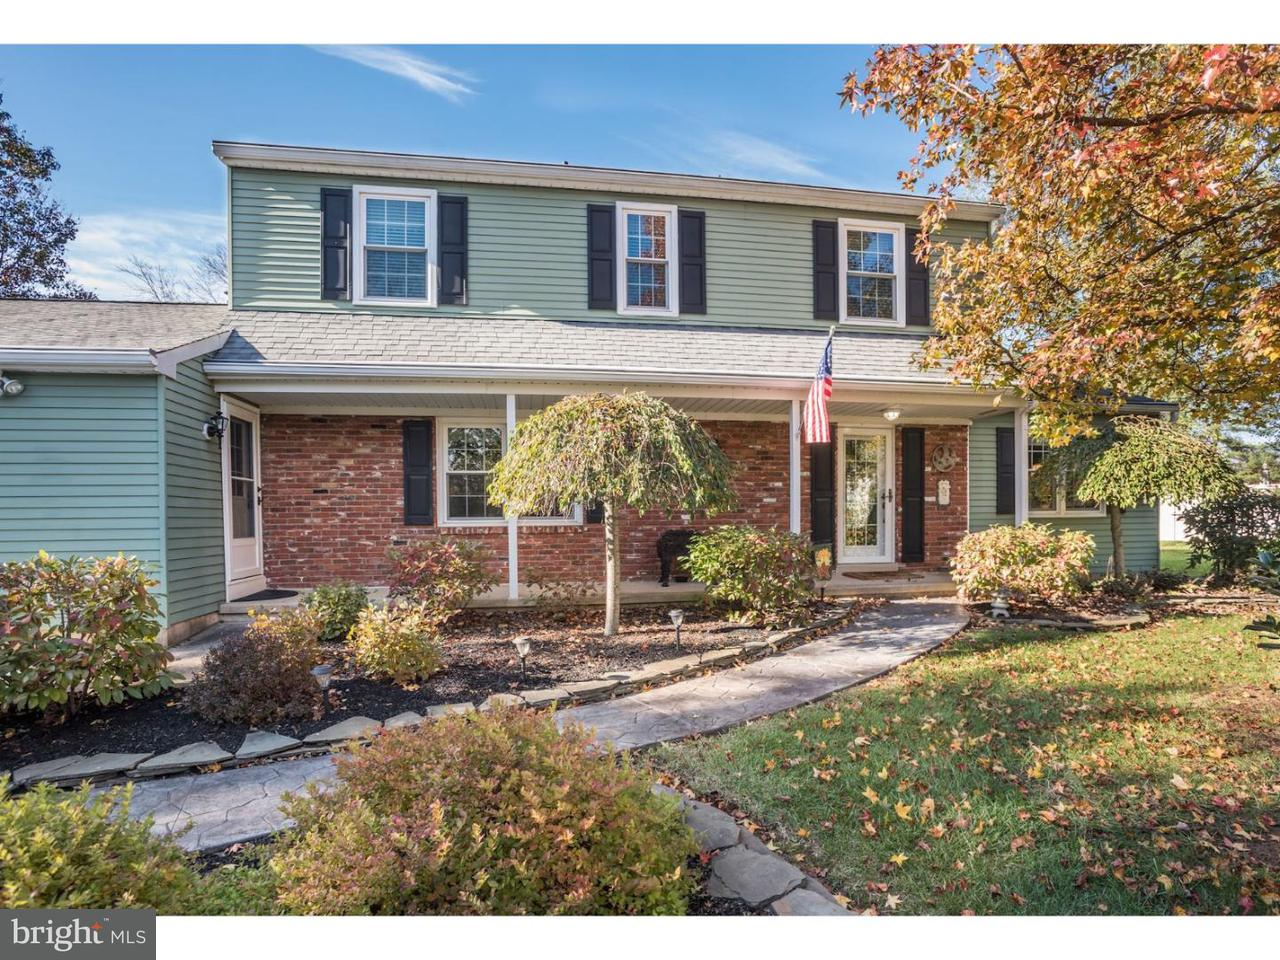 Single Family Home for Sale at 101 COACHMAN Drive Florence, New Jersey 08505 United States